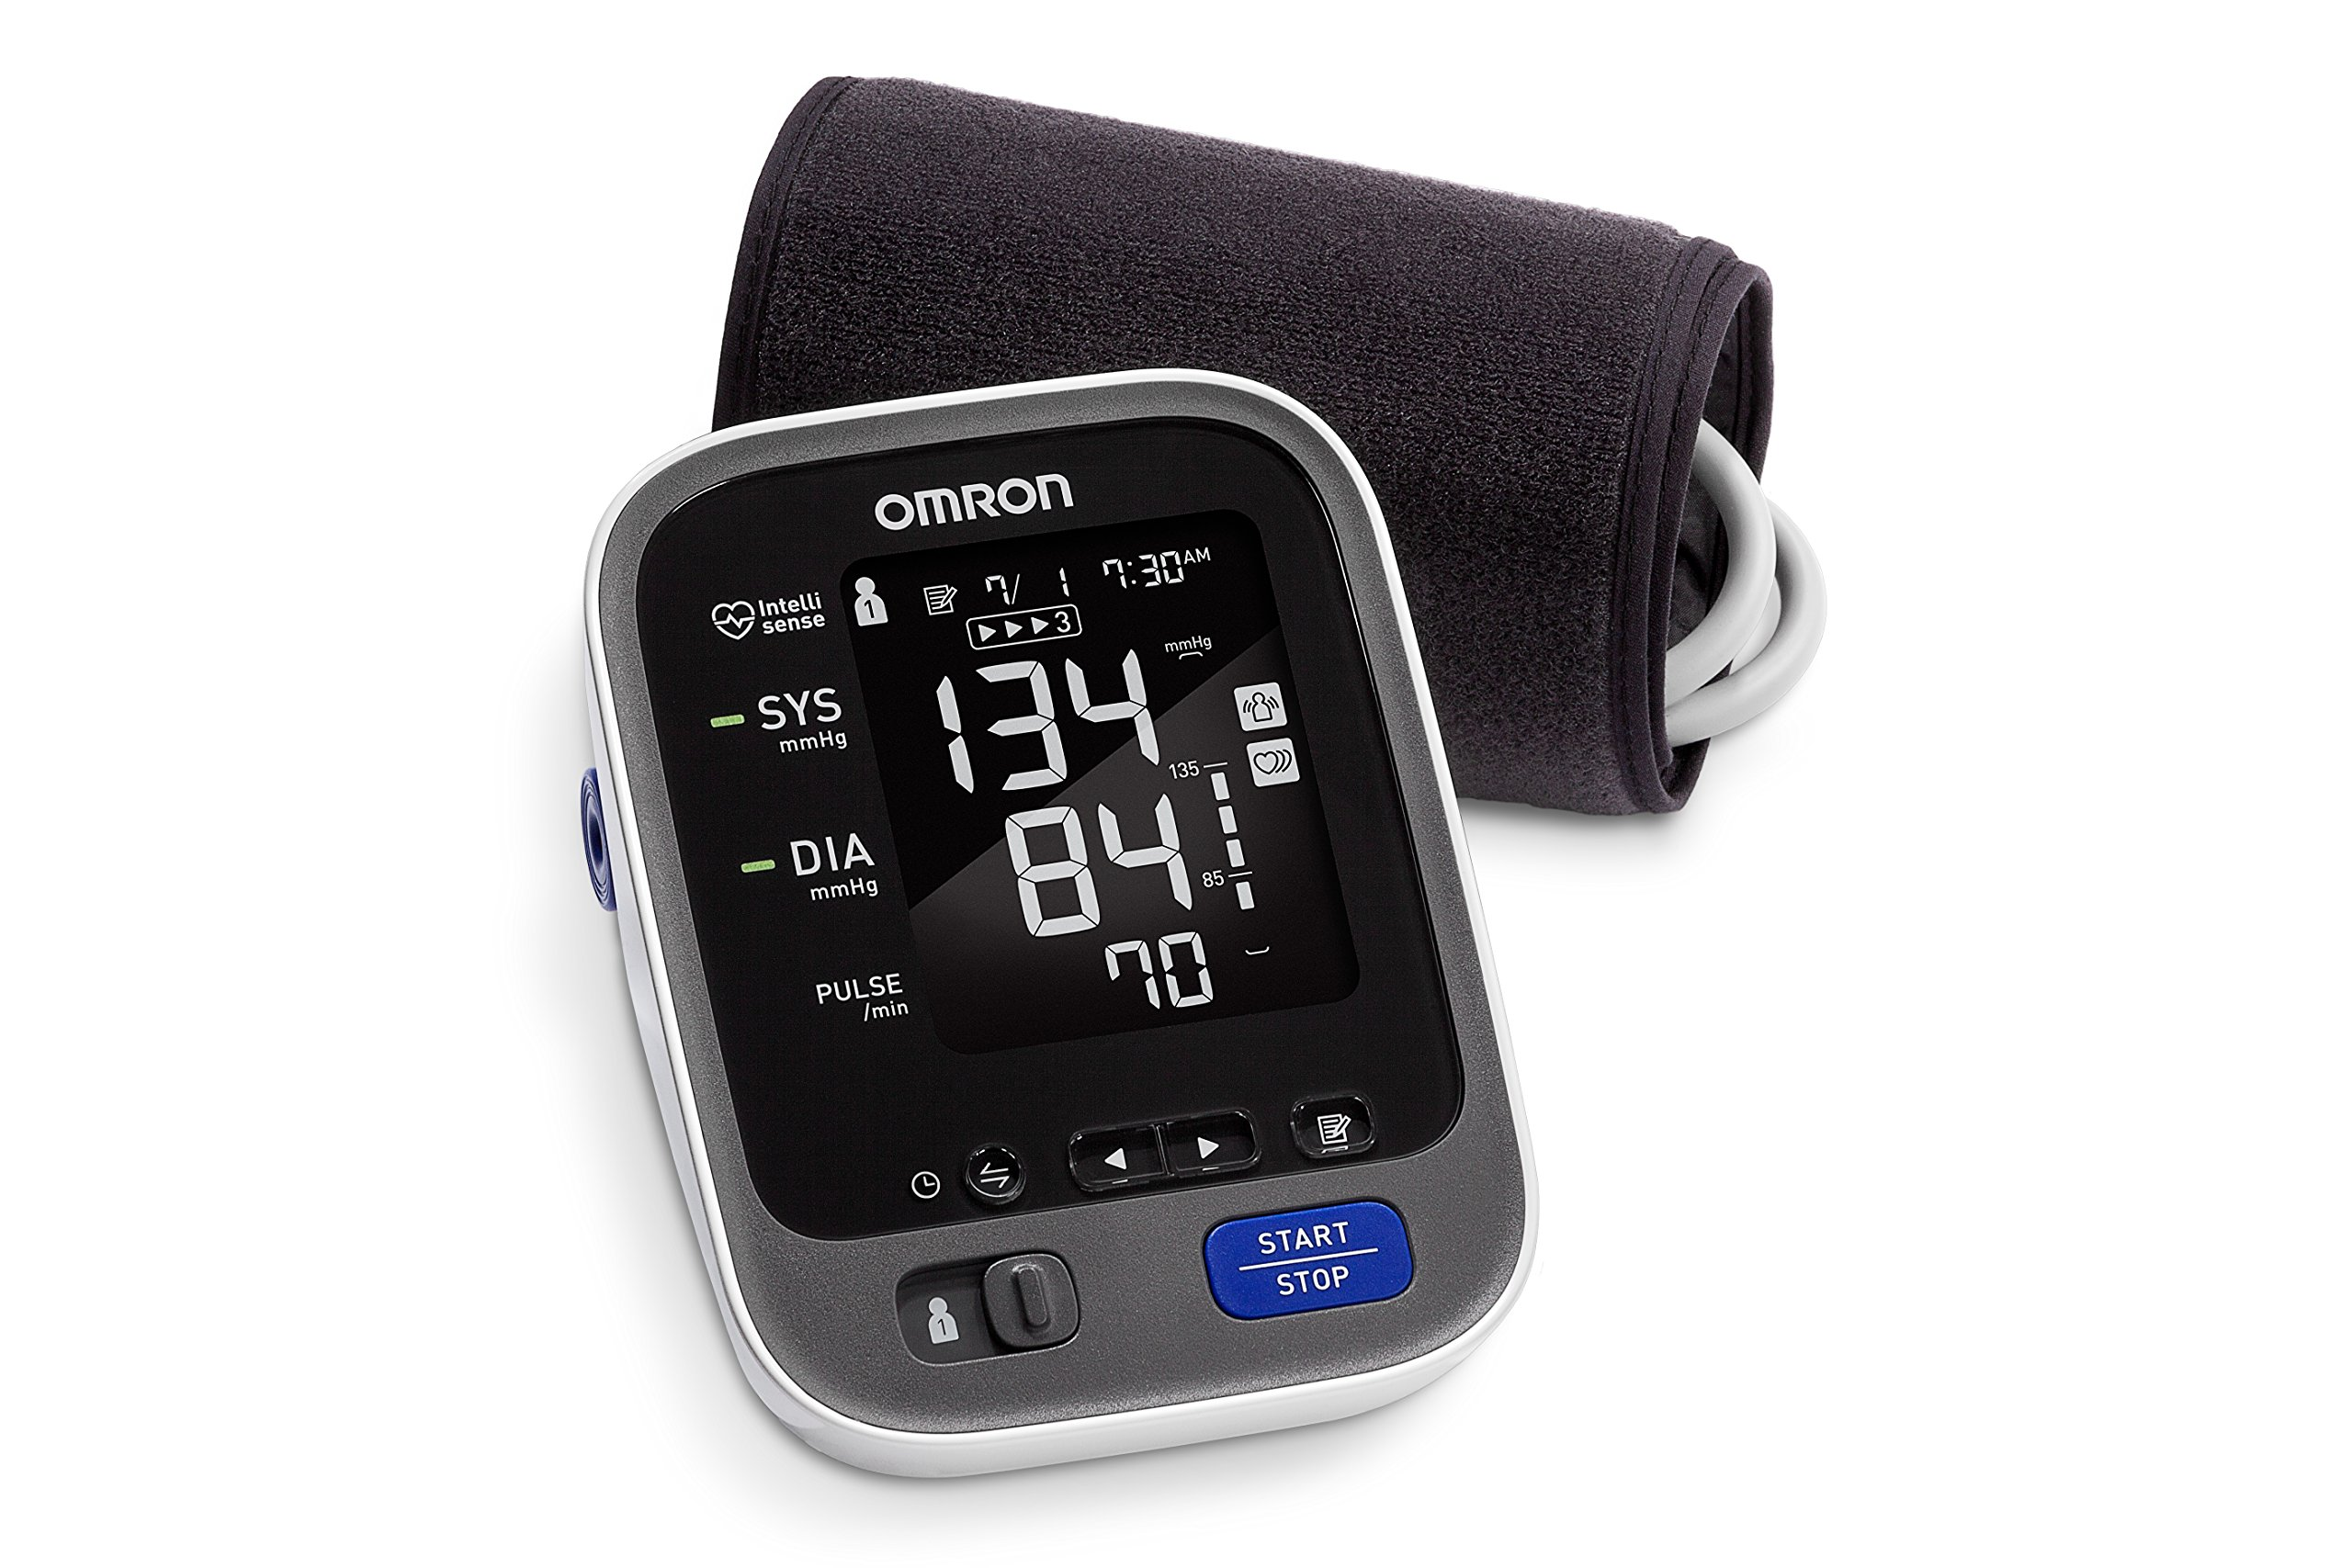 Omron 10 Series Wireless Upper Arm Blood Pressure Monitor; 2-User, 200-Reading Memory, Backlit Display, TruRead Technology, Bluetooth® Works with Amazon Alexa by Omron by Omron